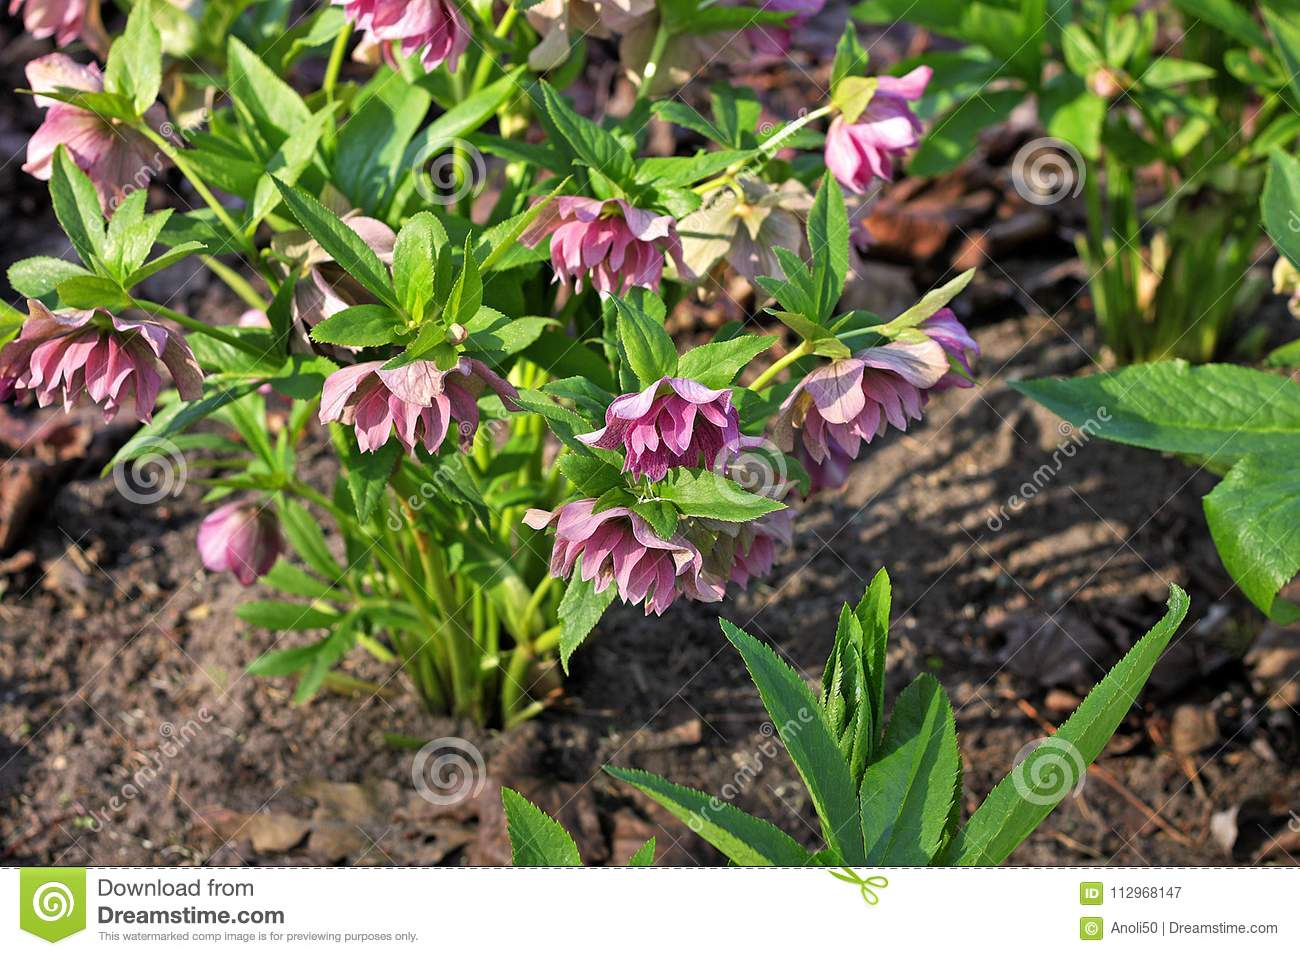 Hellebore flowers stock image image of flower spring 112968147 helleborus also called christmas rose and winter rose winter flowering herbaceous perennial grown for purple flowers mightylinksfo